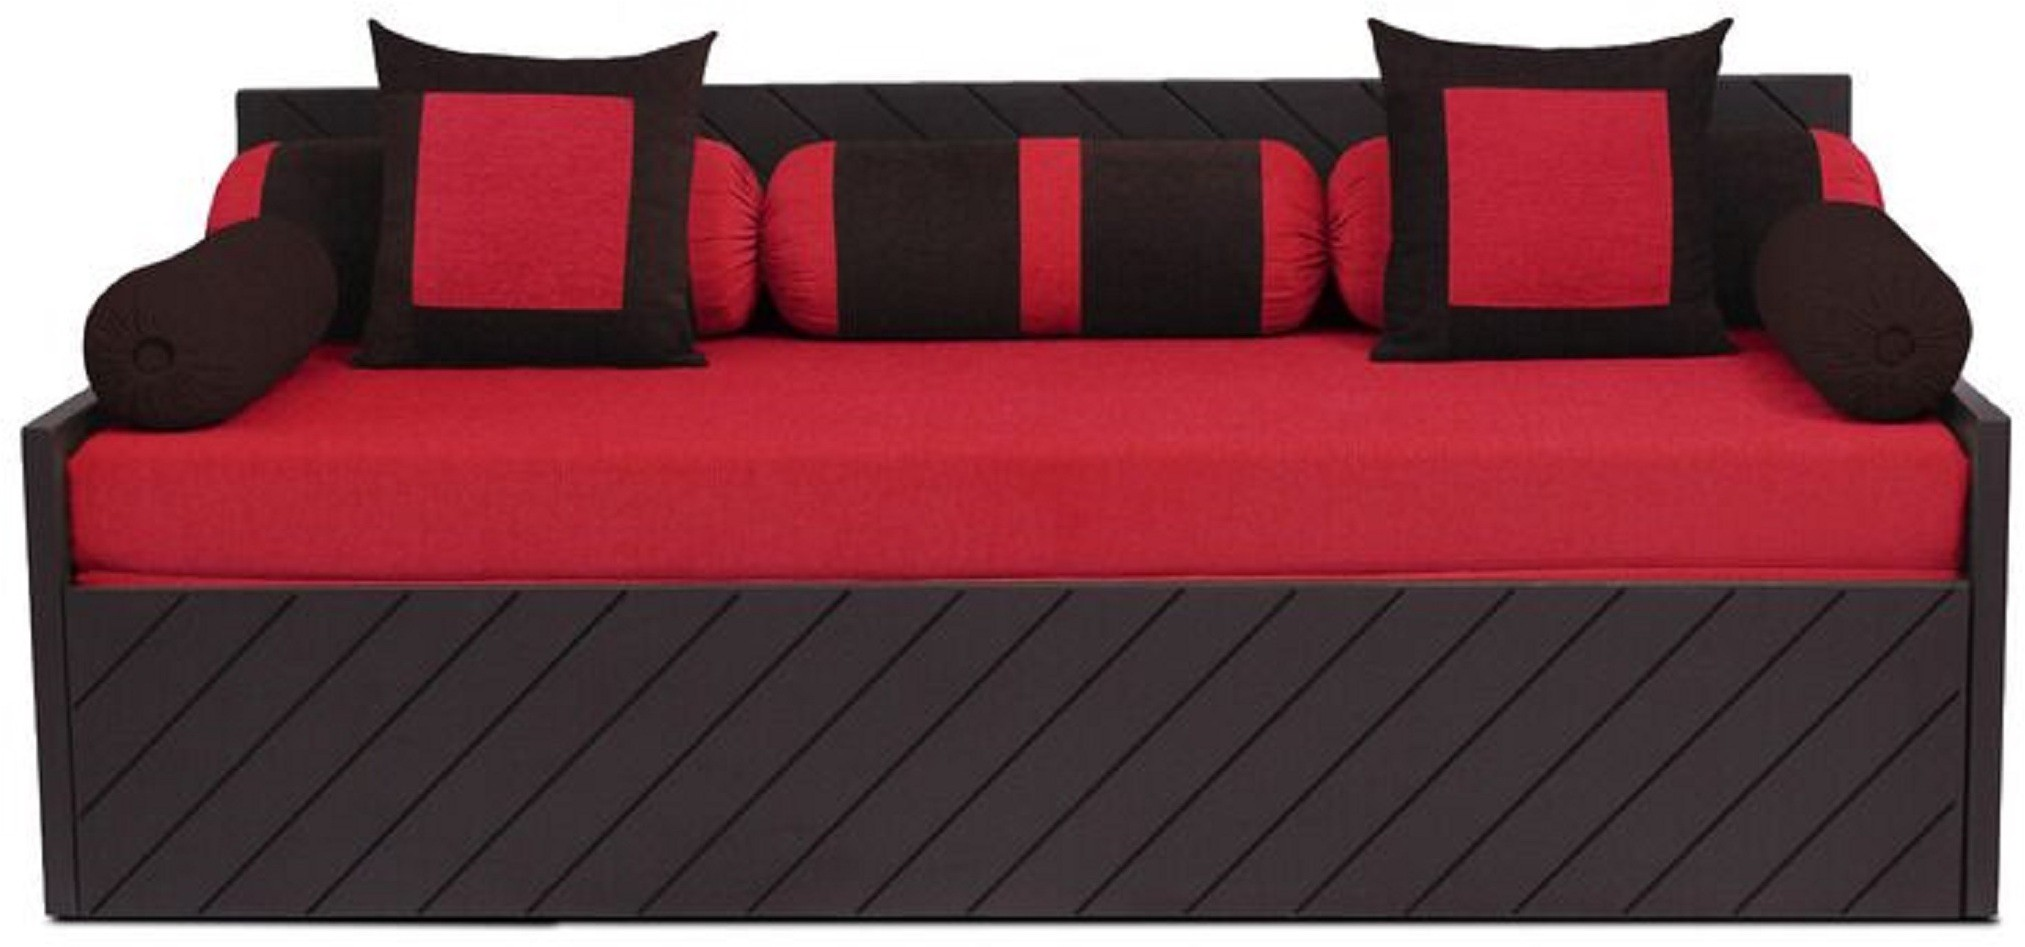 View Auspicious Home Kaiden (2 Pillows, 5 Bolsters) Double Fabric Sofa Bed(Finish Color - Red Mechanism Type - Pull Out) Furniture (Auspicious Home)